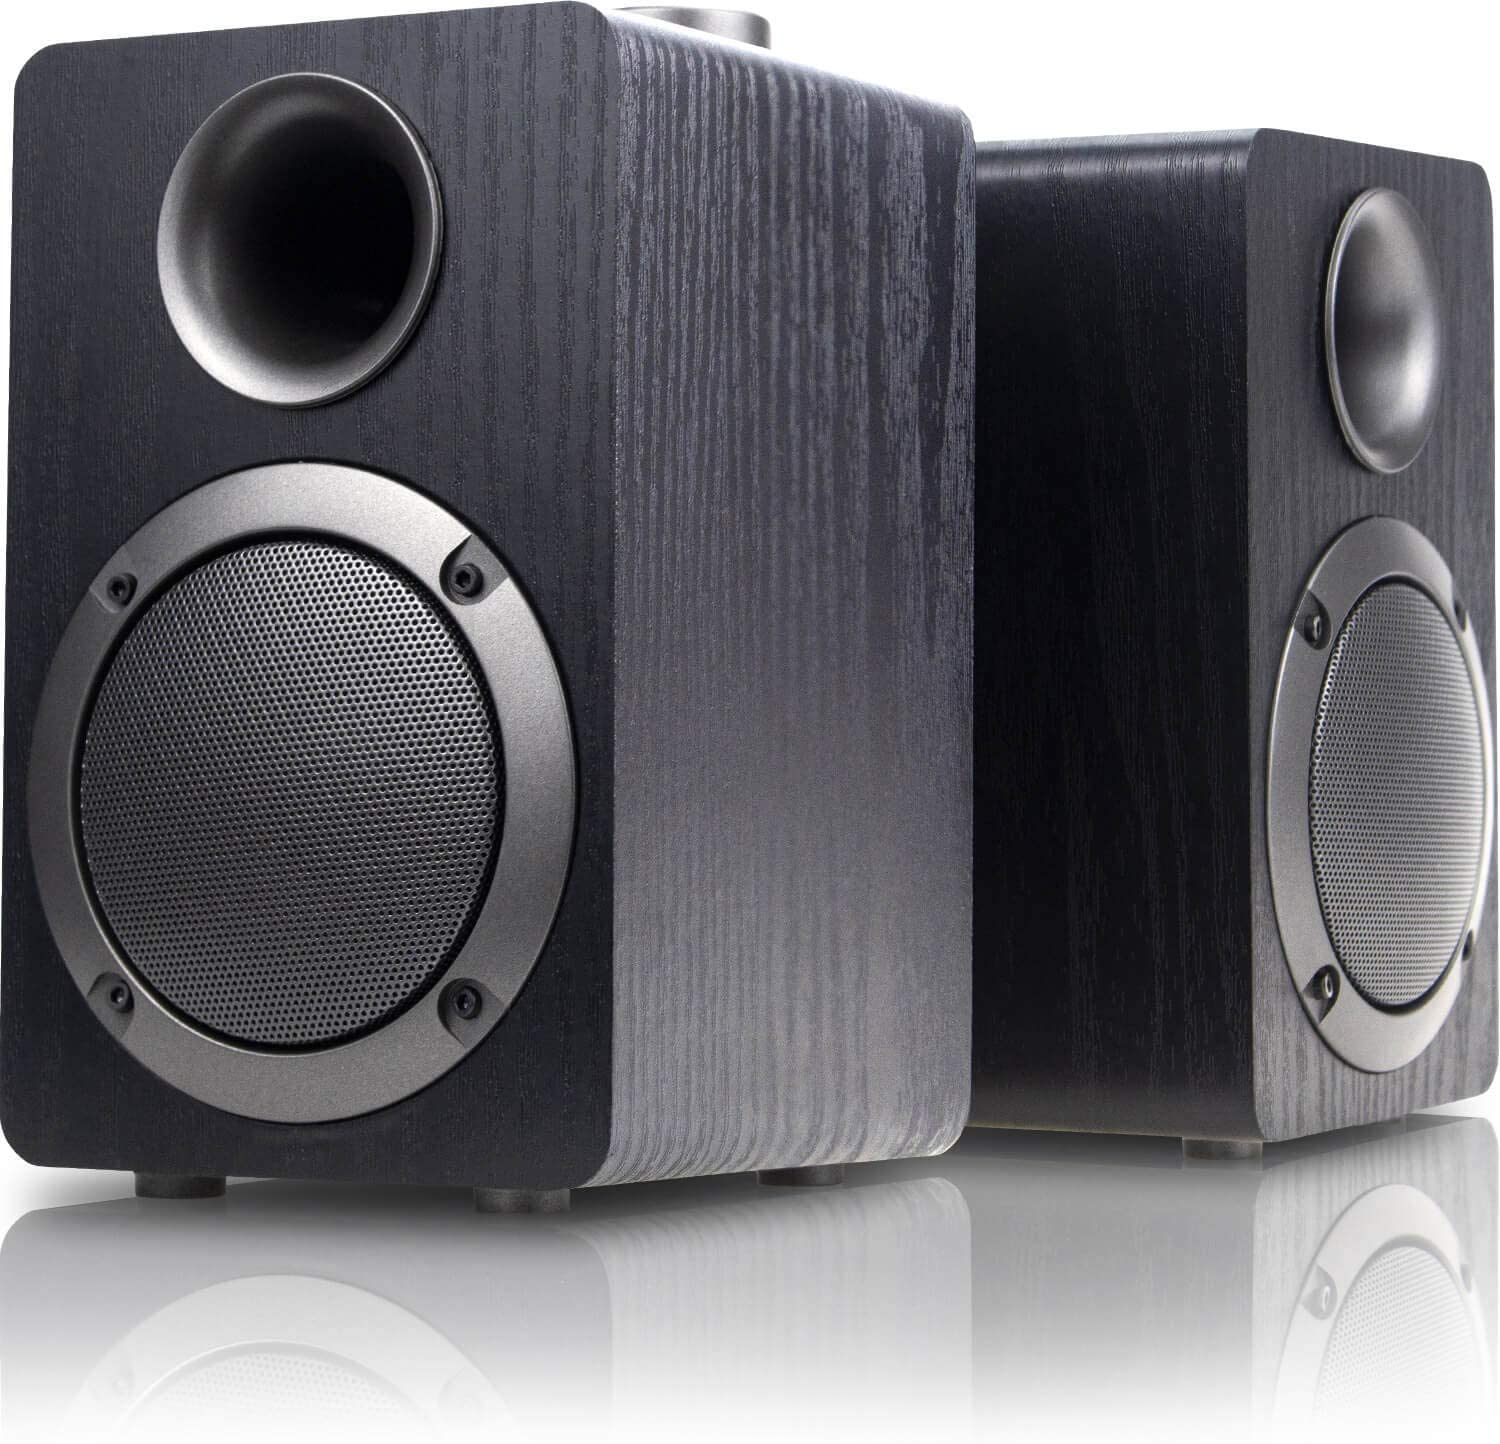 USB-Powered PC Computer Speakers; Mica PB20i with 2.0CH Surround Sound, Wooden Wired LED Volume Control Mini Speaker for Multiple Devices, Black